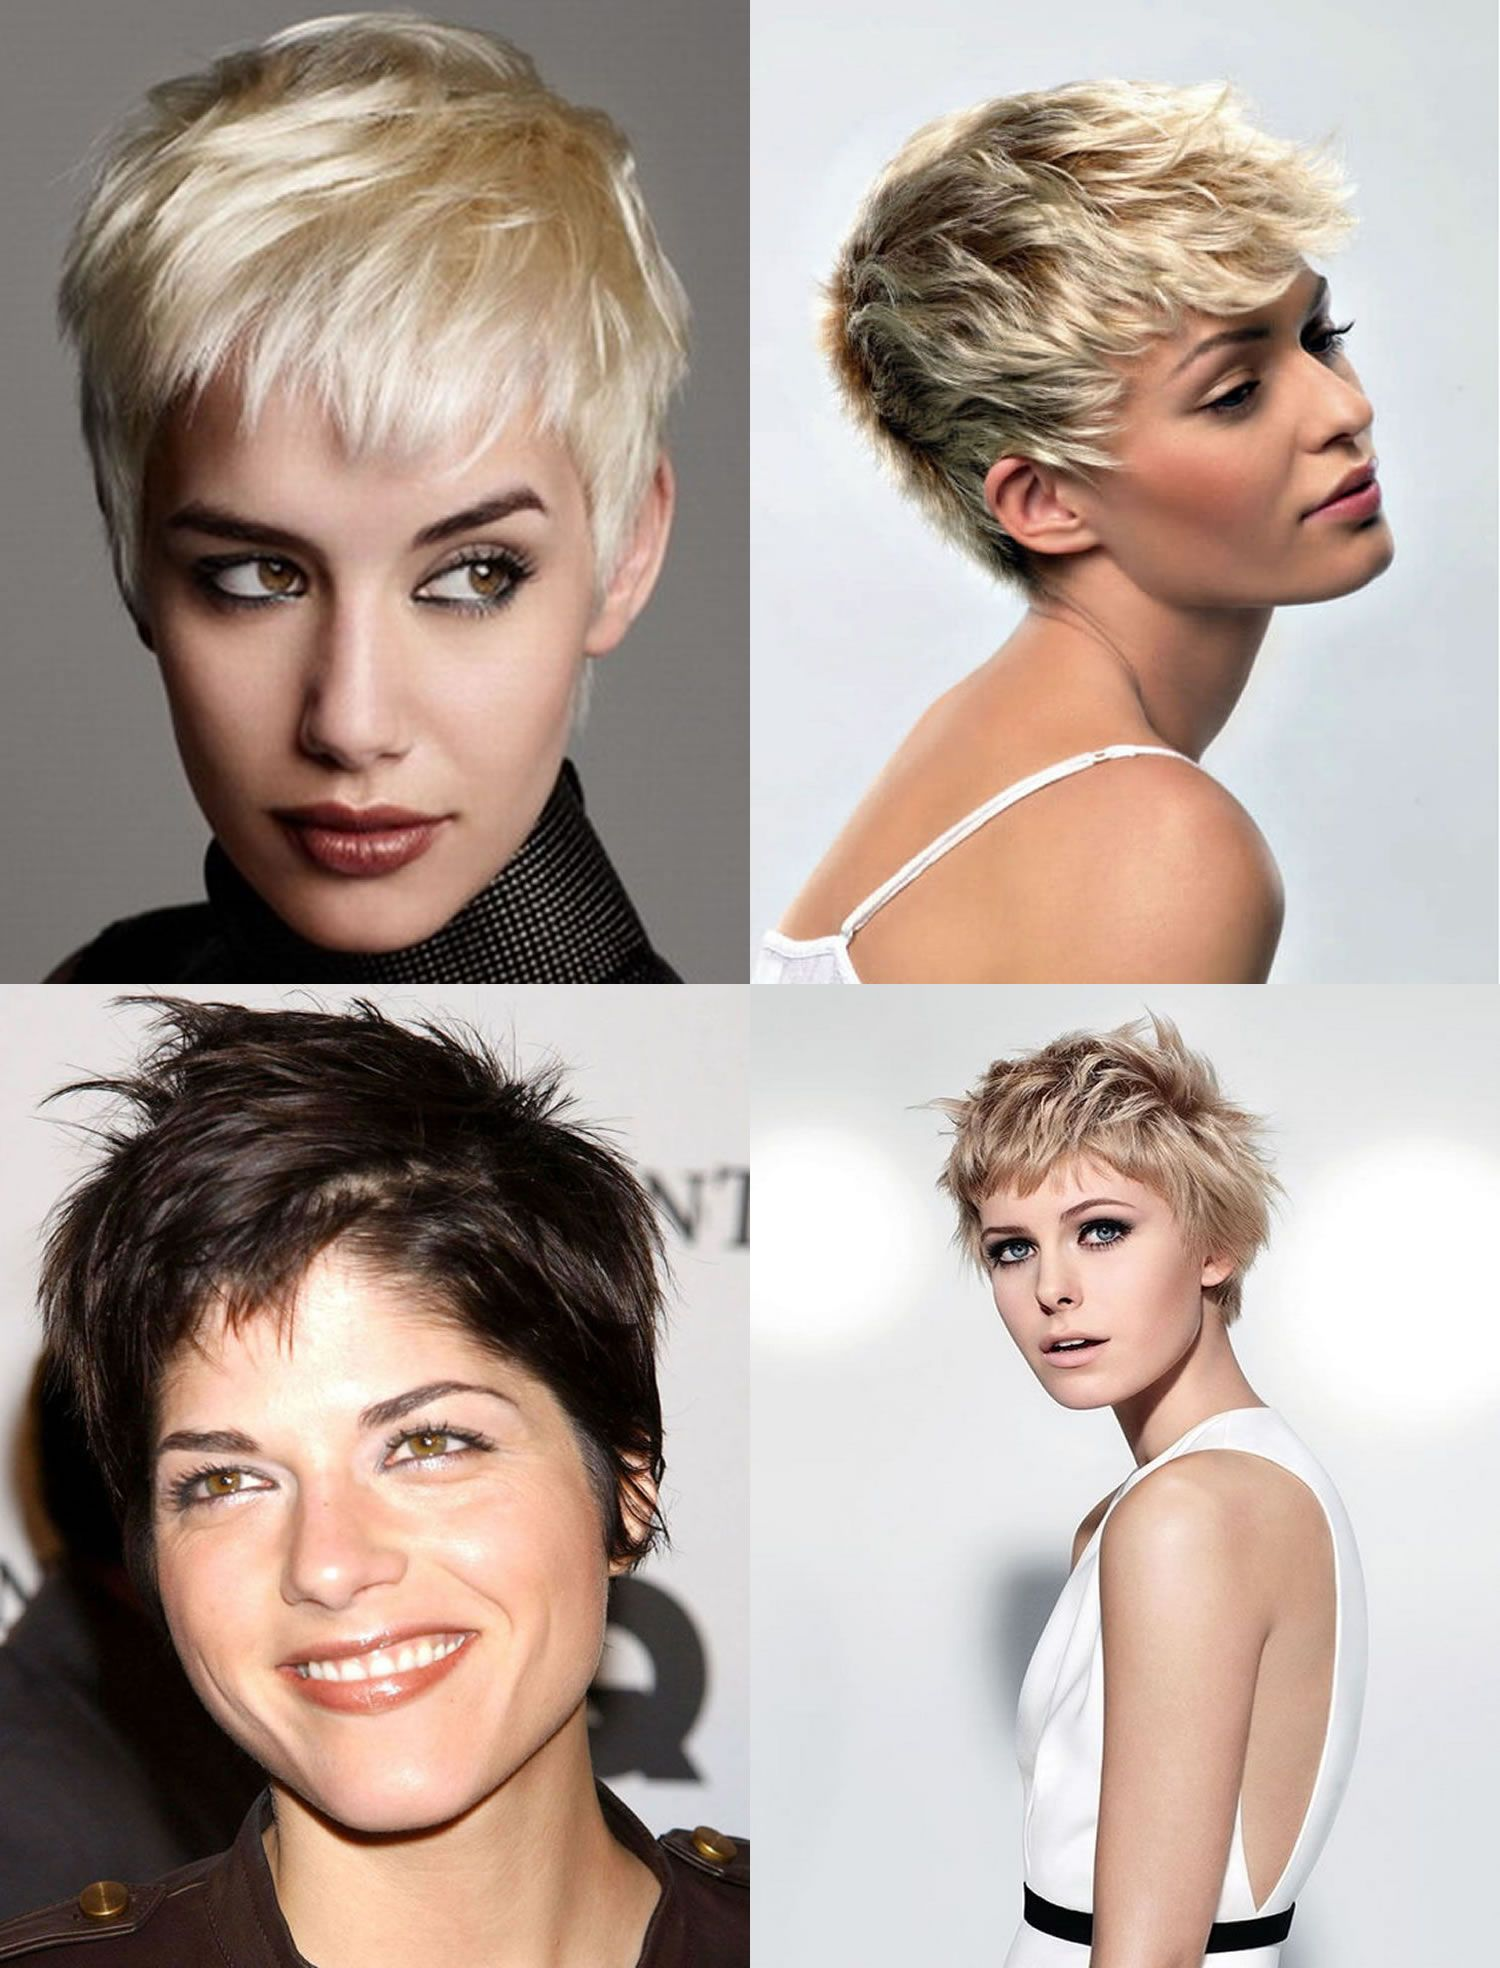 33 incredible hairstyles for diamond face shape | short hair